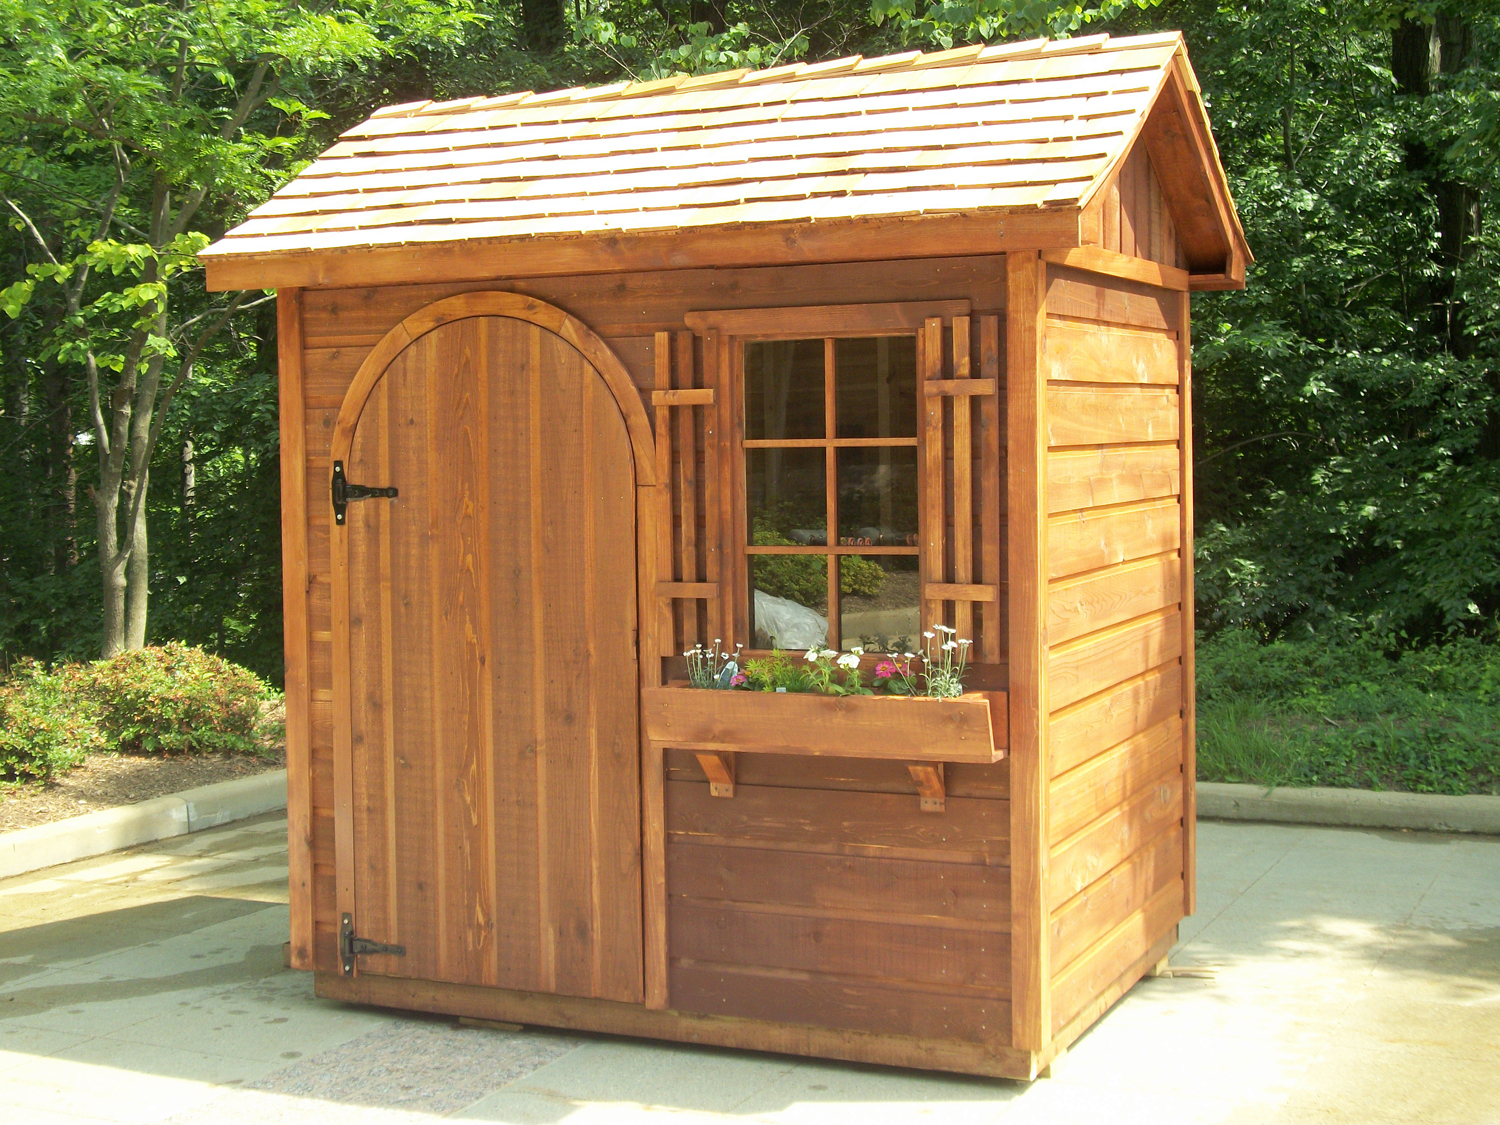 Diy garden shed design quick woodworking projects for Small barn designs